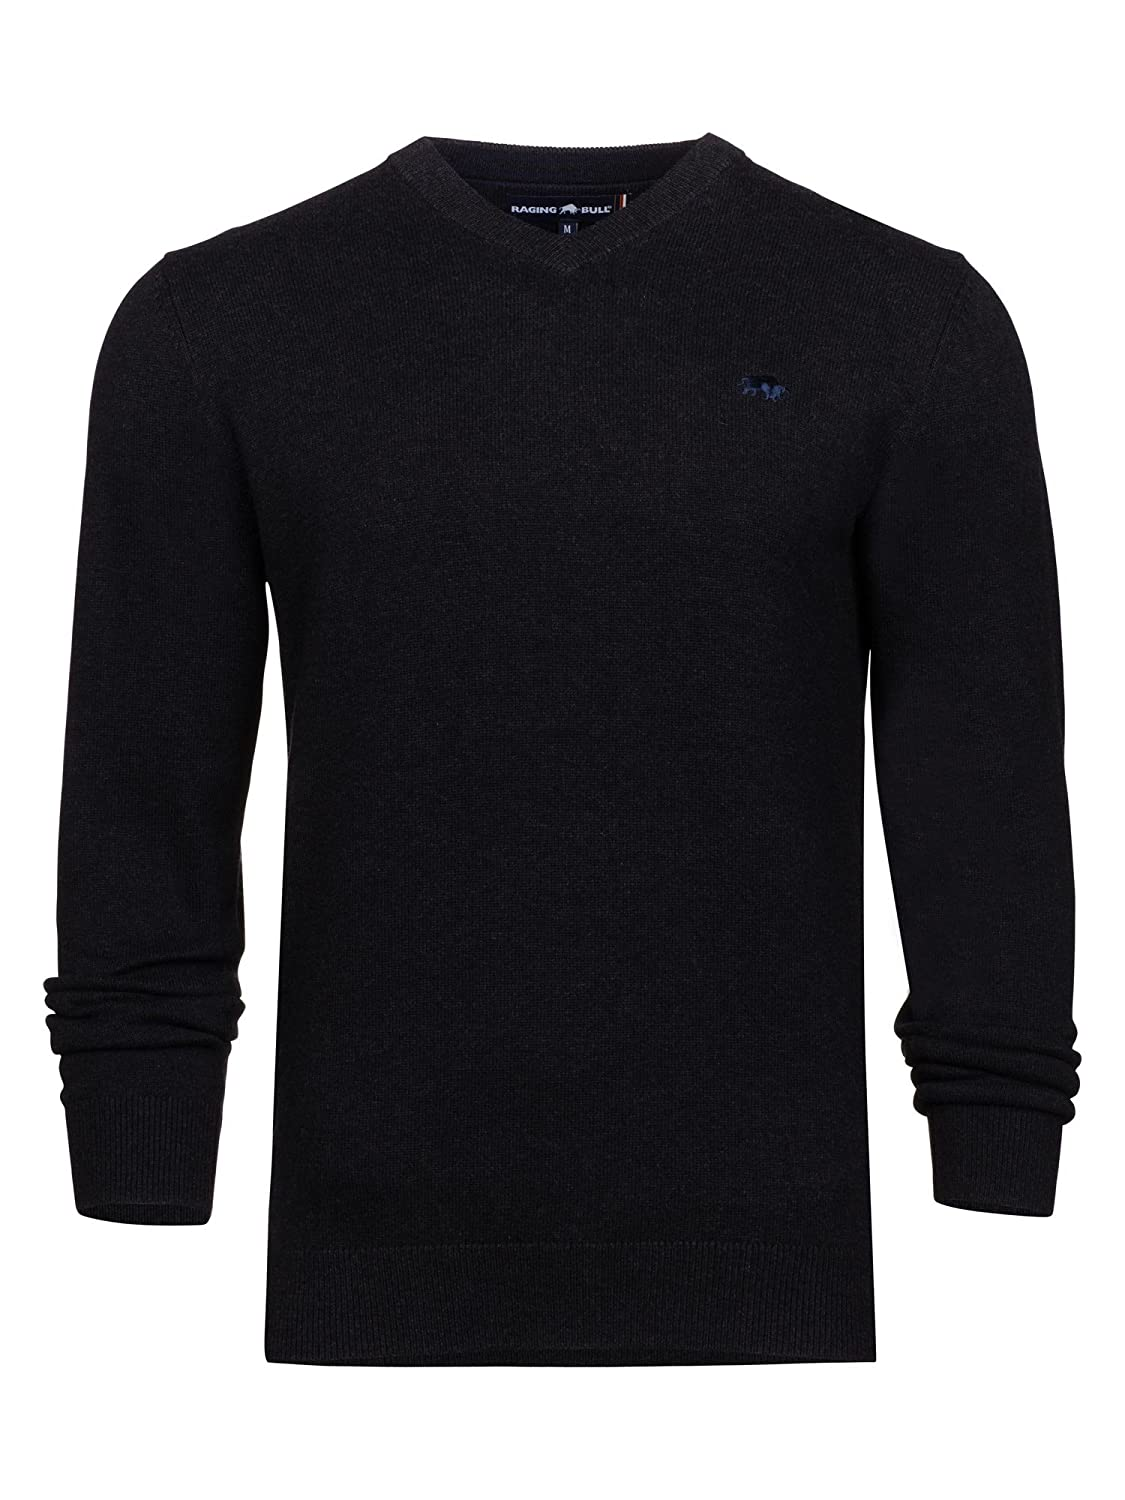 Raging Bull Big and Tall V-Neck Cott/Cash Sweater, Jersey para Hombre